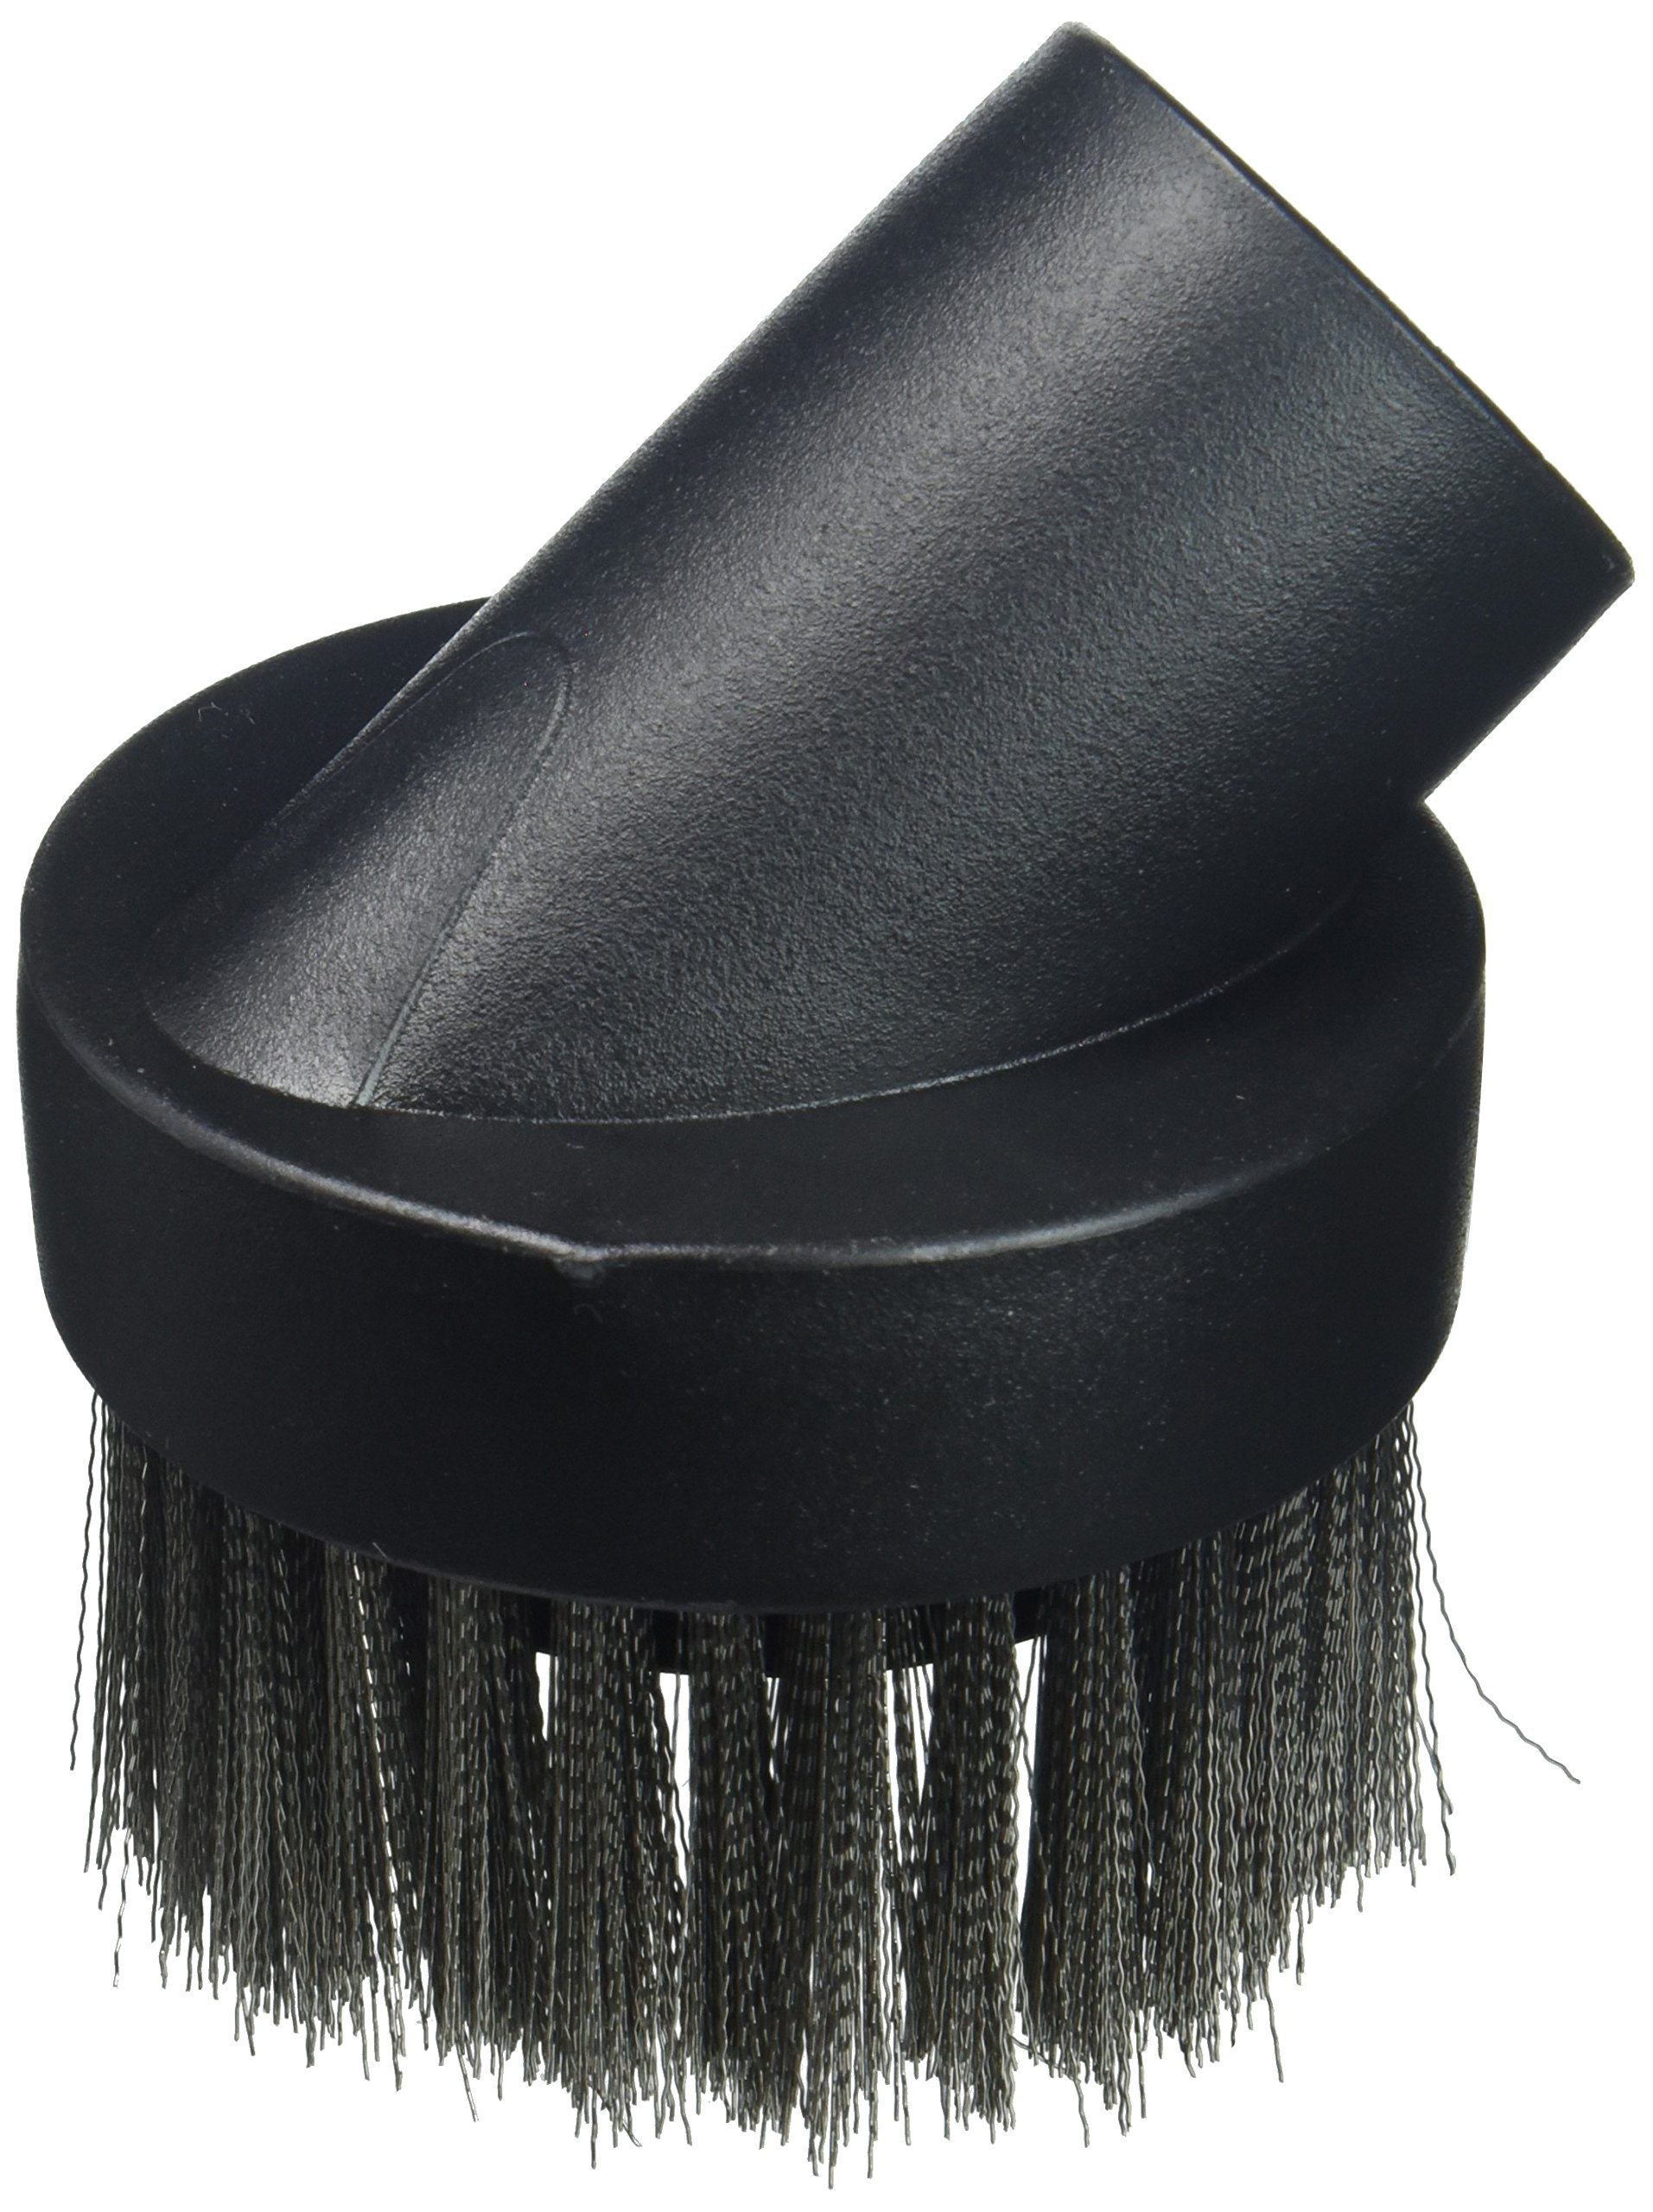 Love-Less Ash Wire Brush Tool, Round by Love-less Ash